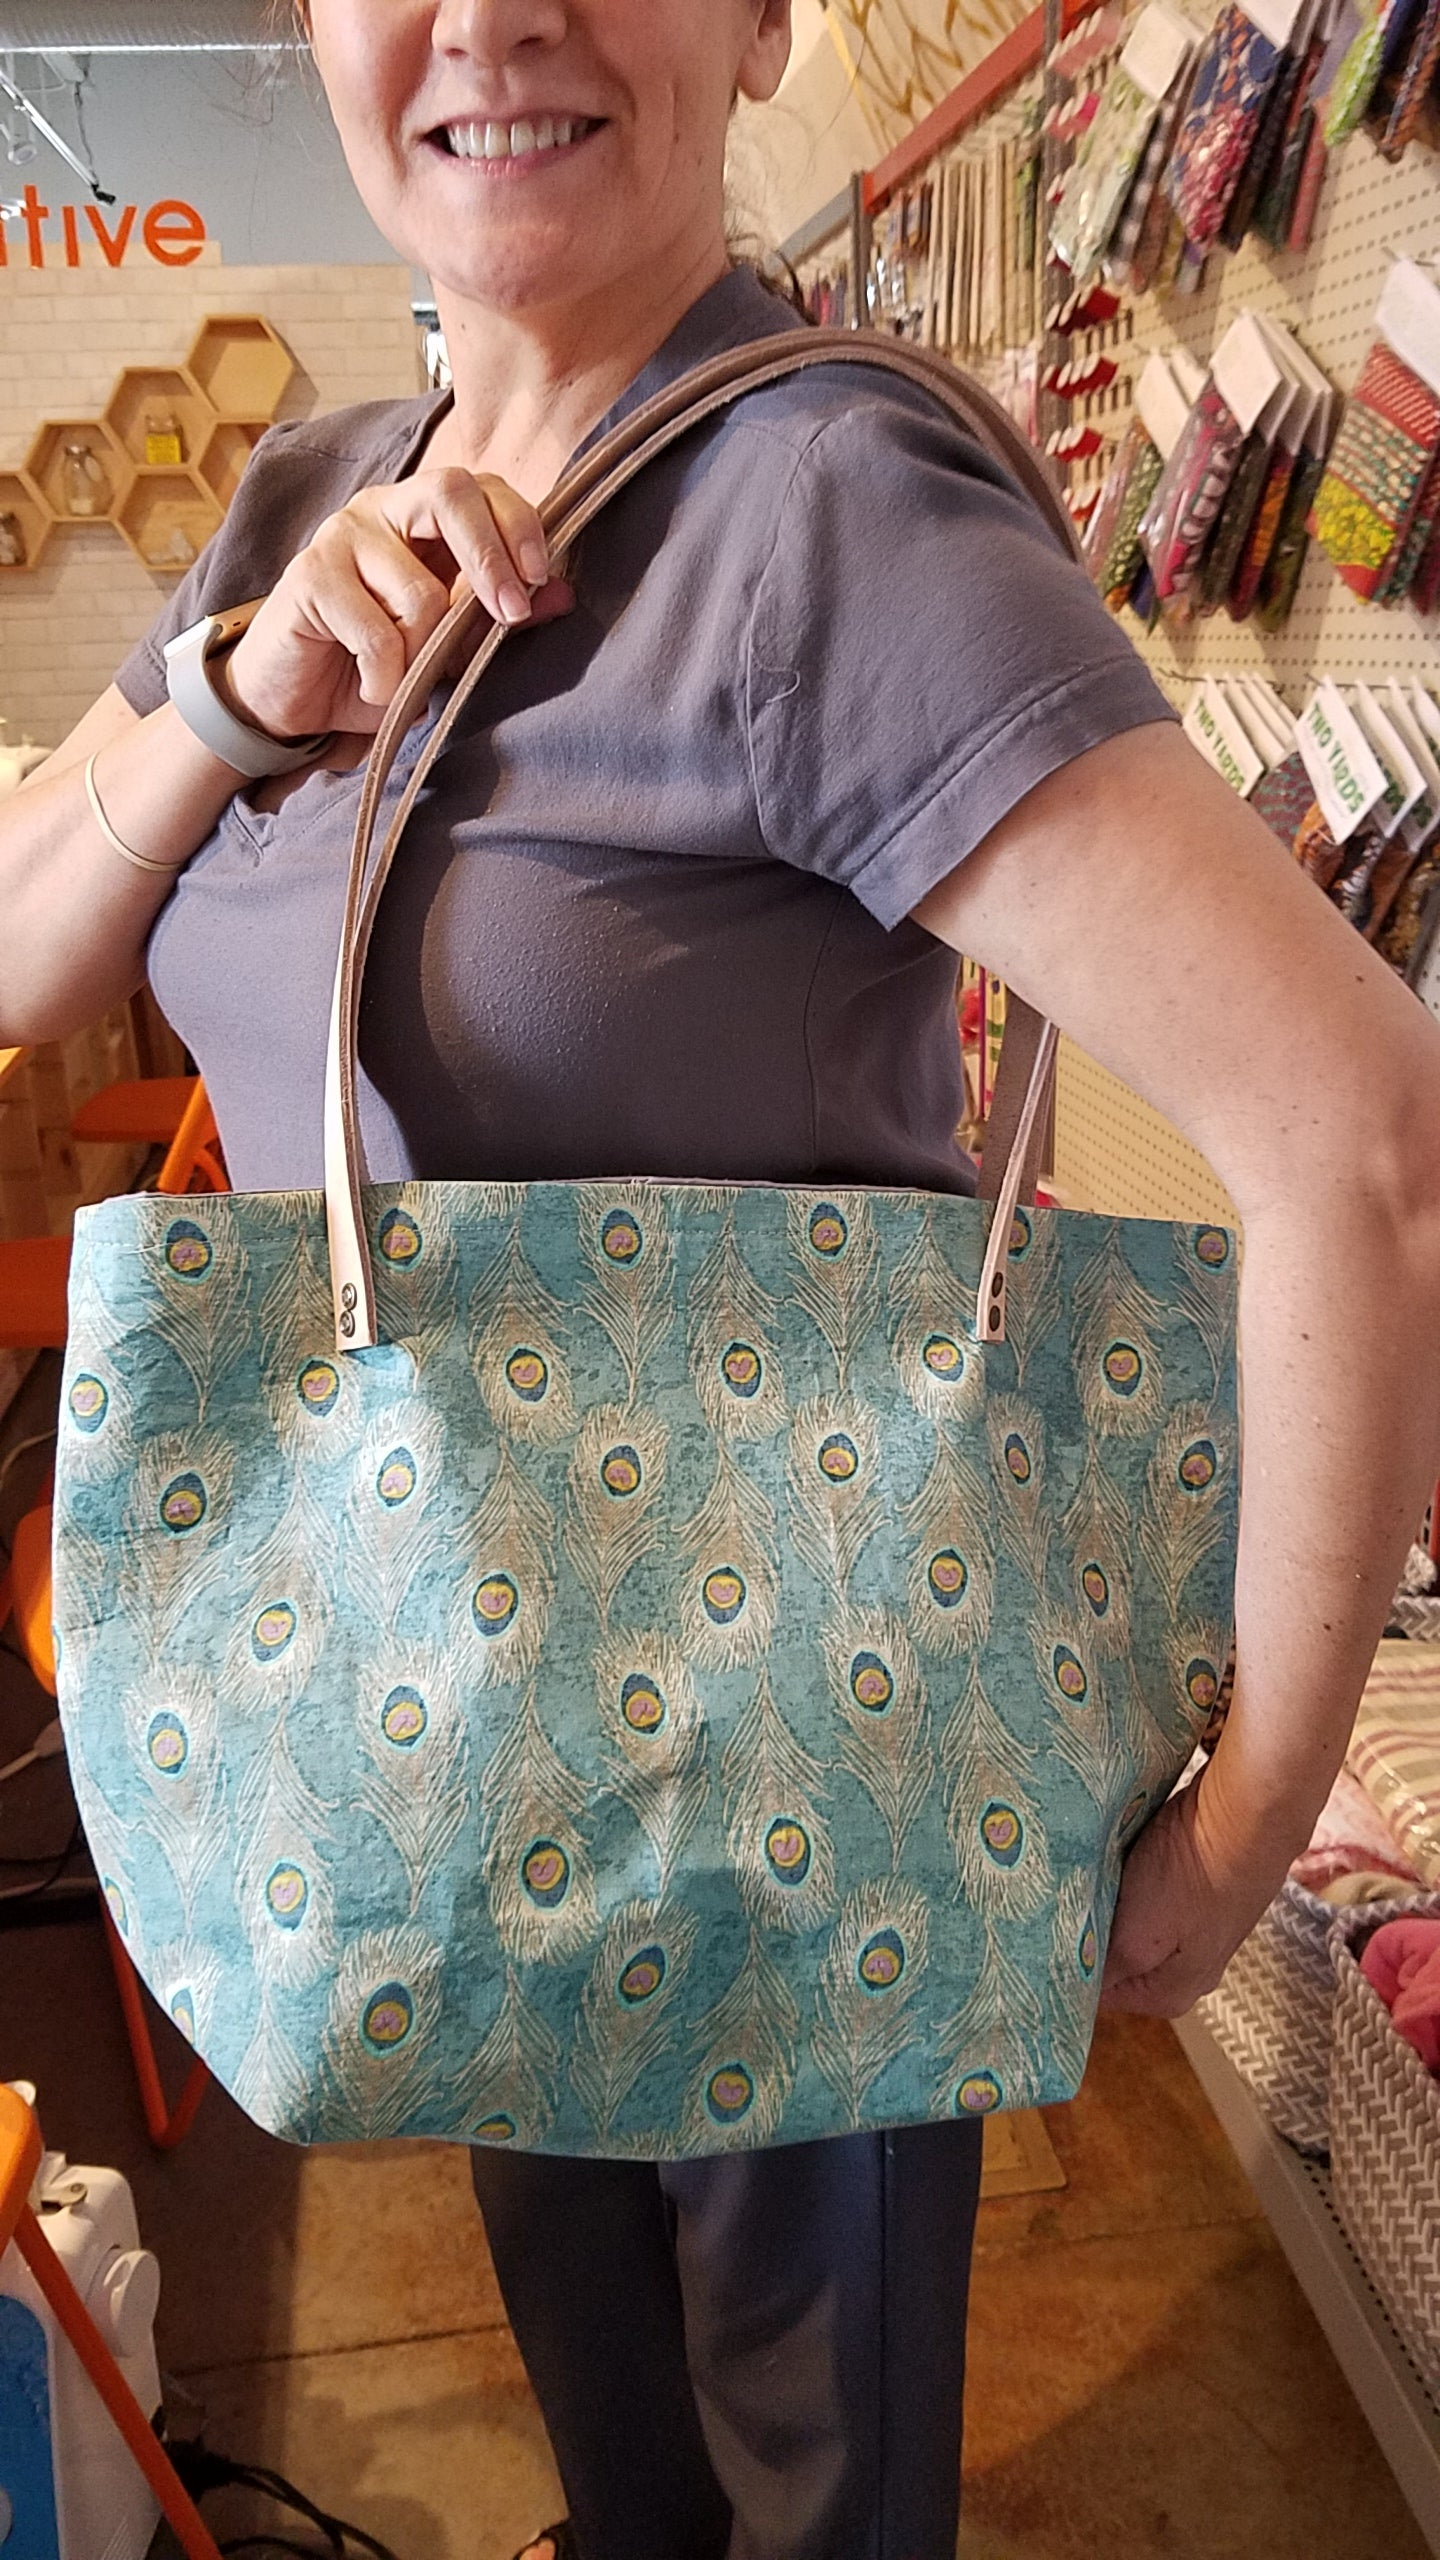 Sewing 102 - Leather Handled Totes